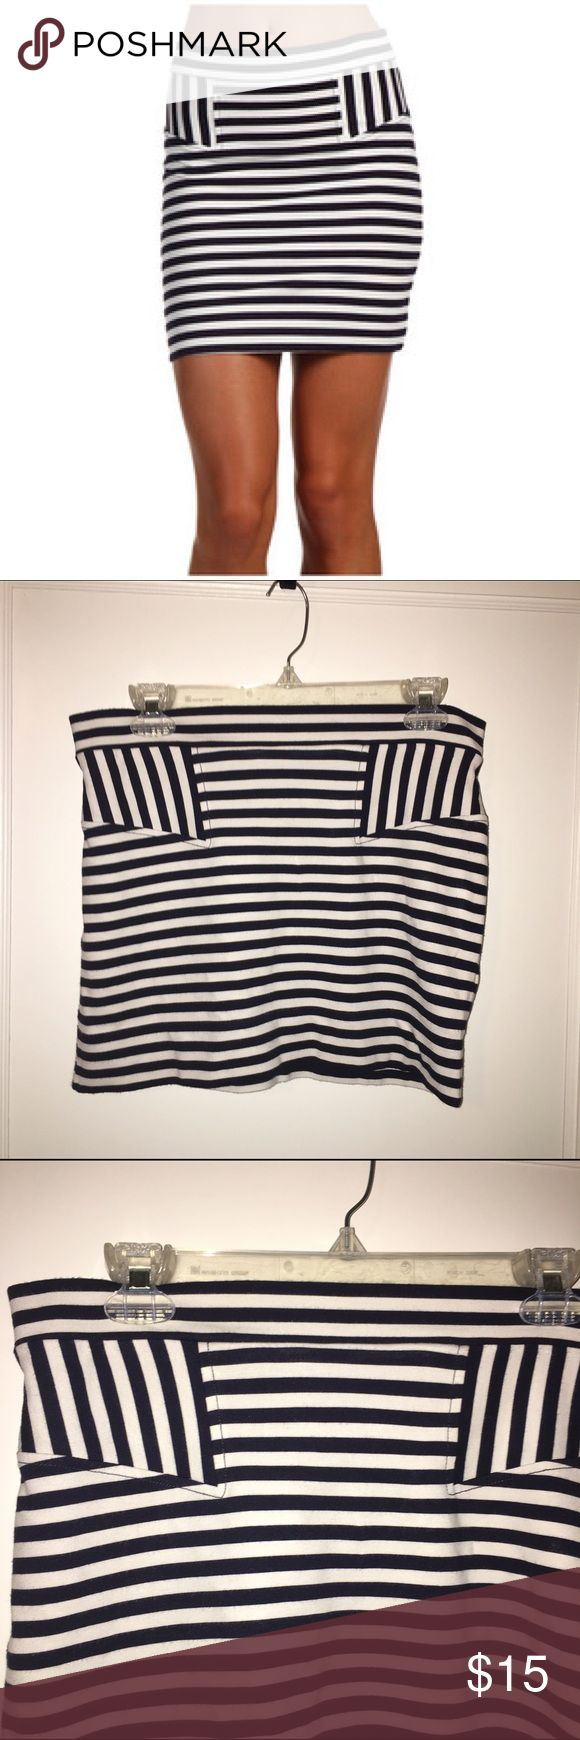 French Connection Promenade Stripe Skirt Cream and navy striped stretch skirt.  Size 10.  French Connection. Lovingly worn.  Looks good lots of life in it. French Connection Skirts Midi